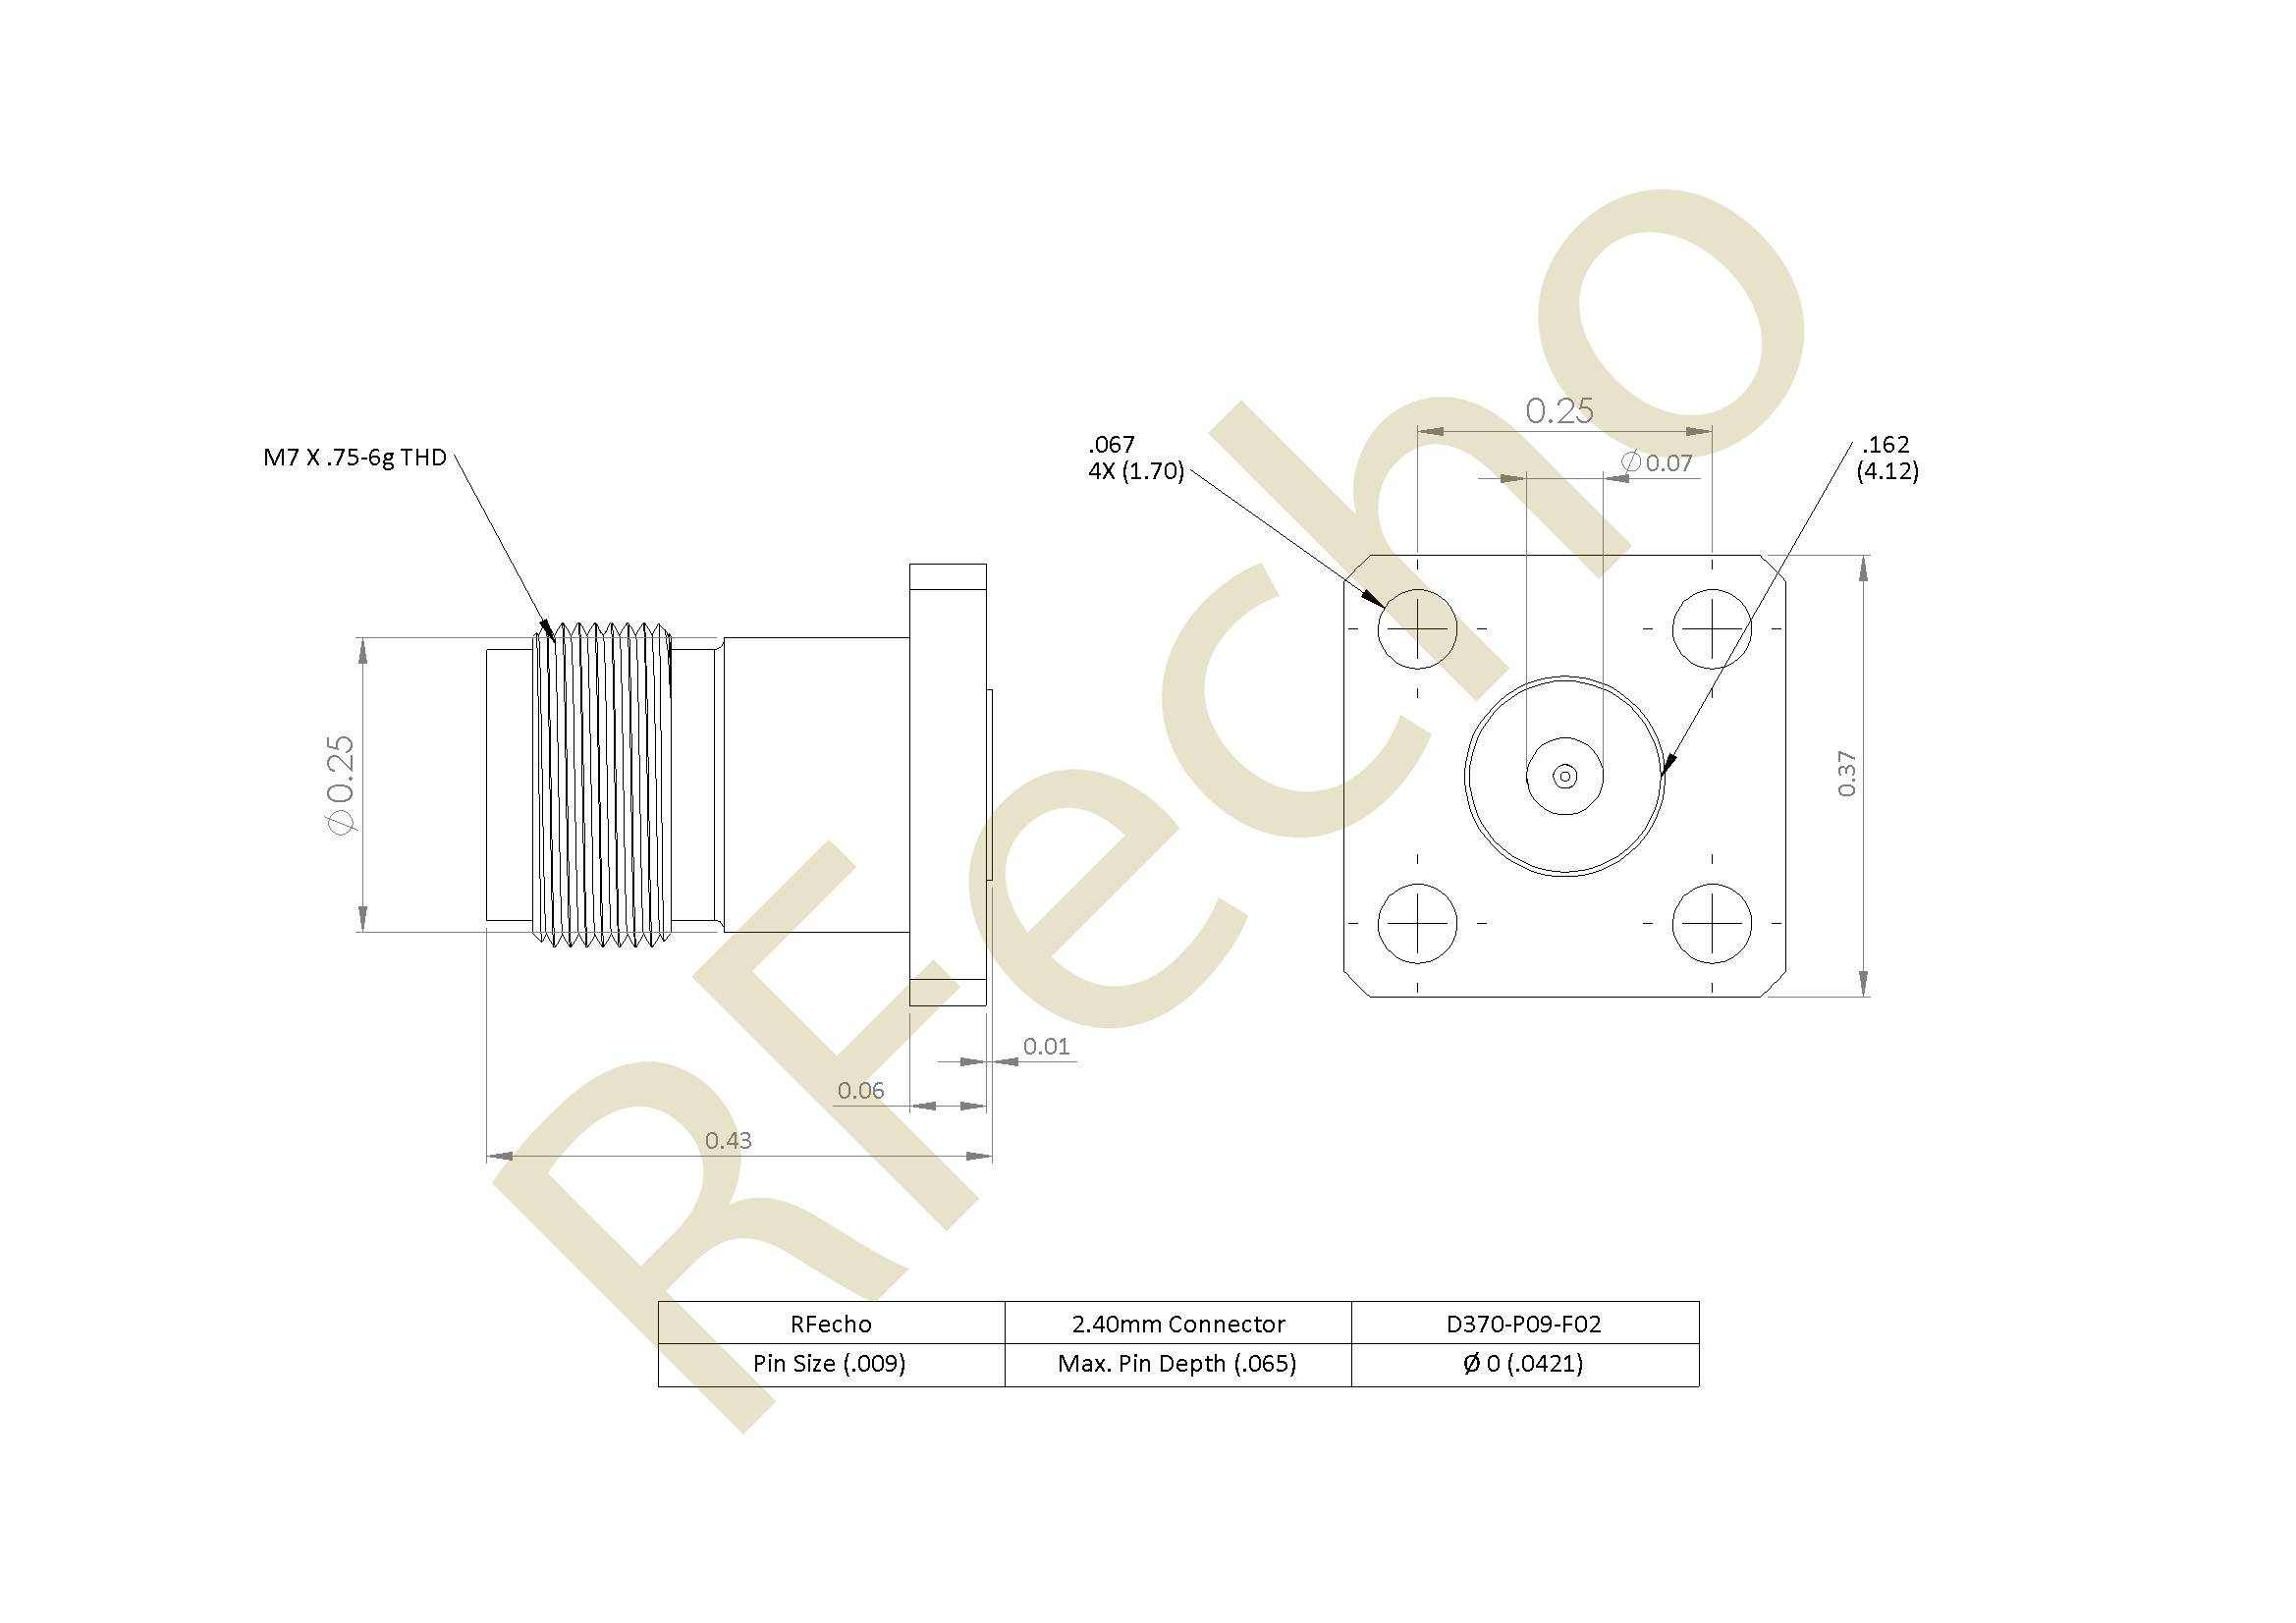 2.40mm 50 GHz, 0.009″ Accept Pin Diameter, 4 Hole .375″ Square Mounting Flange Female Connector